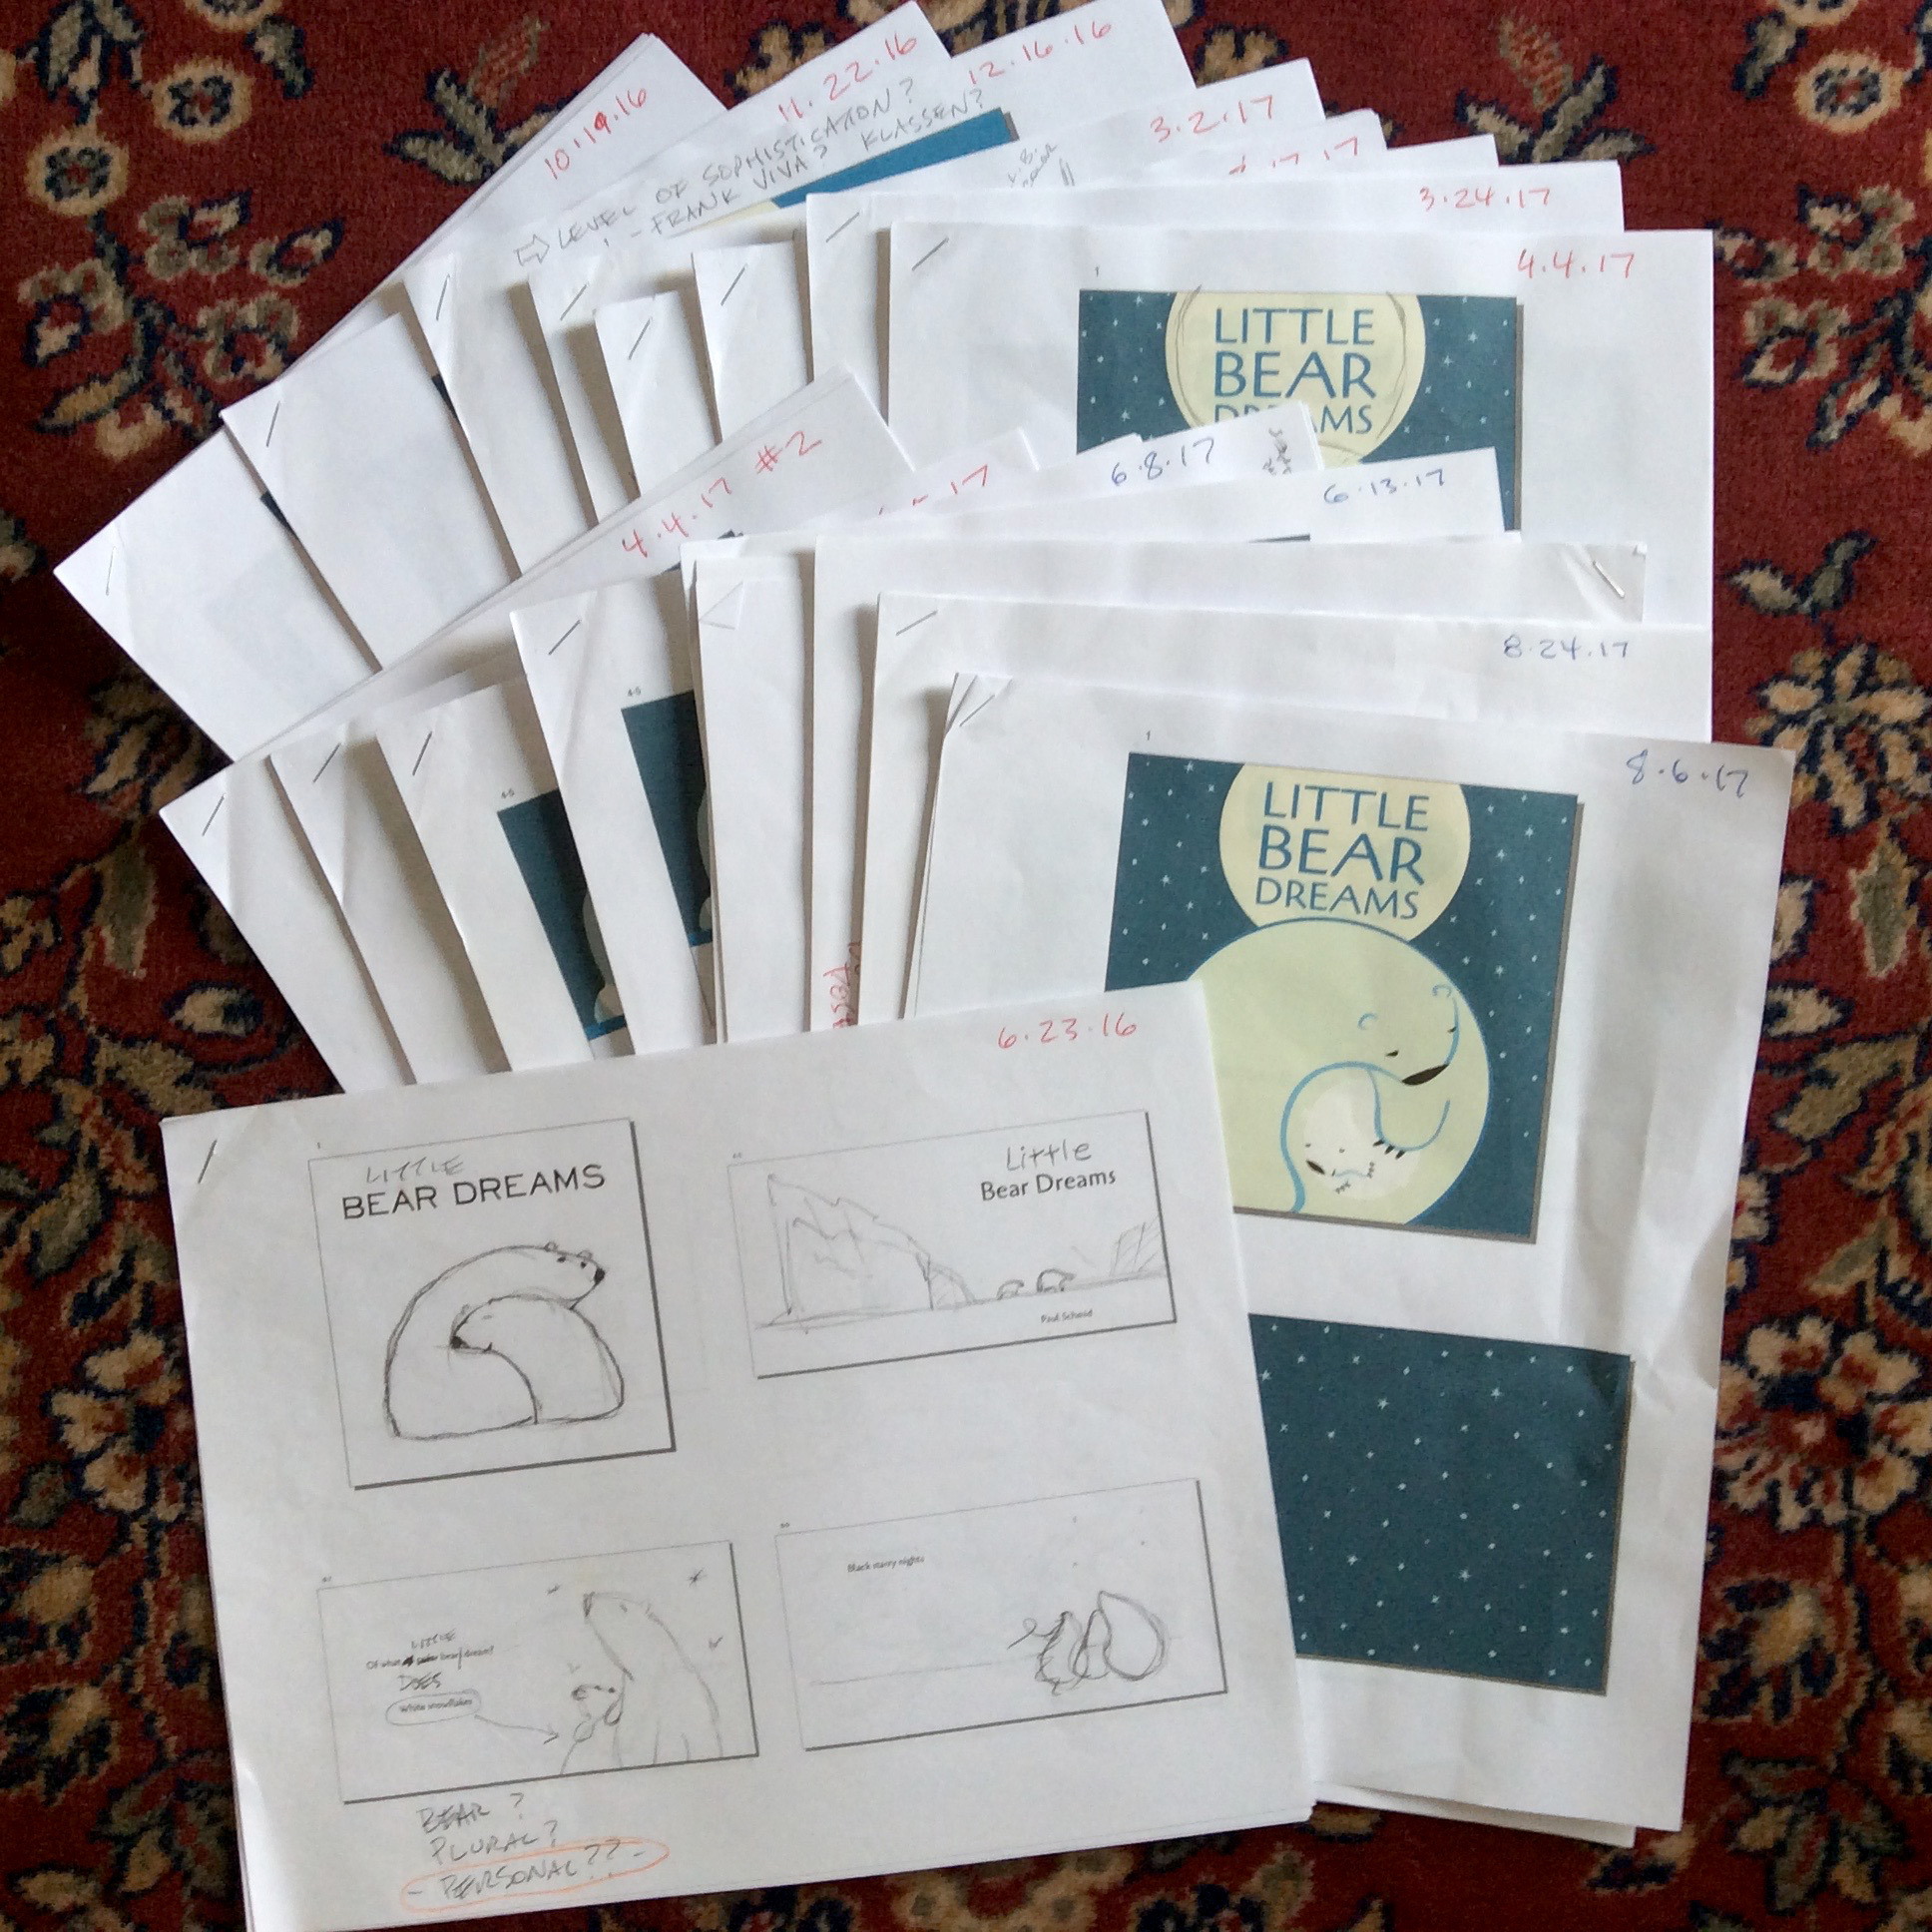 CPB - Paul Schmid Interview - more sketches for Little Bear Dreams